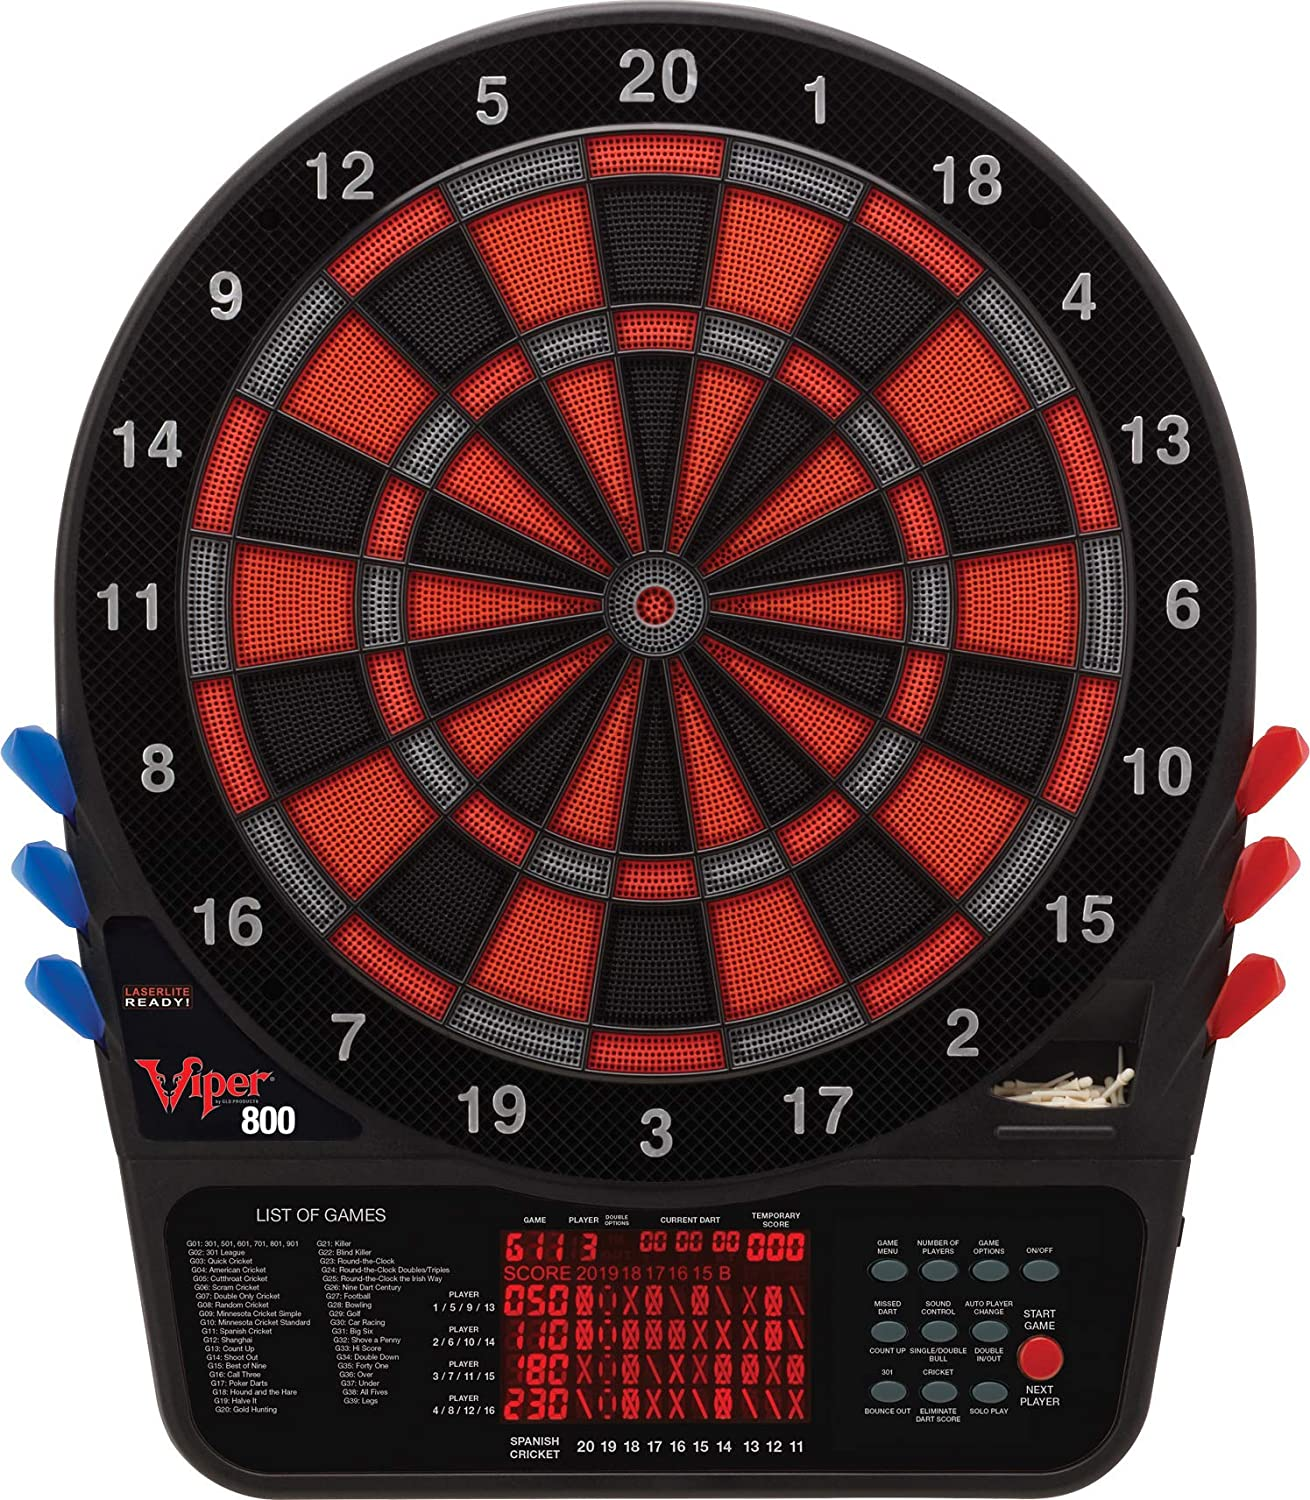 Viper 800 Electronic Dartboard Extended Scoreboard For Spanish